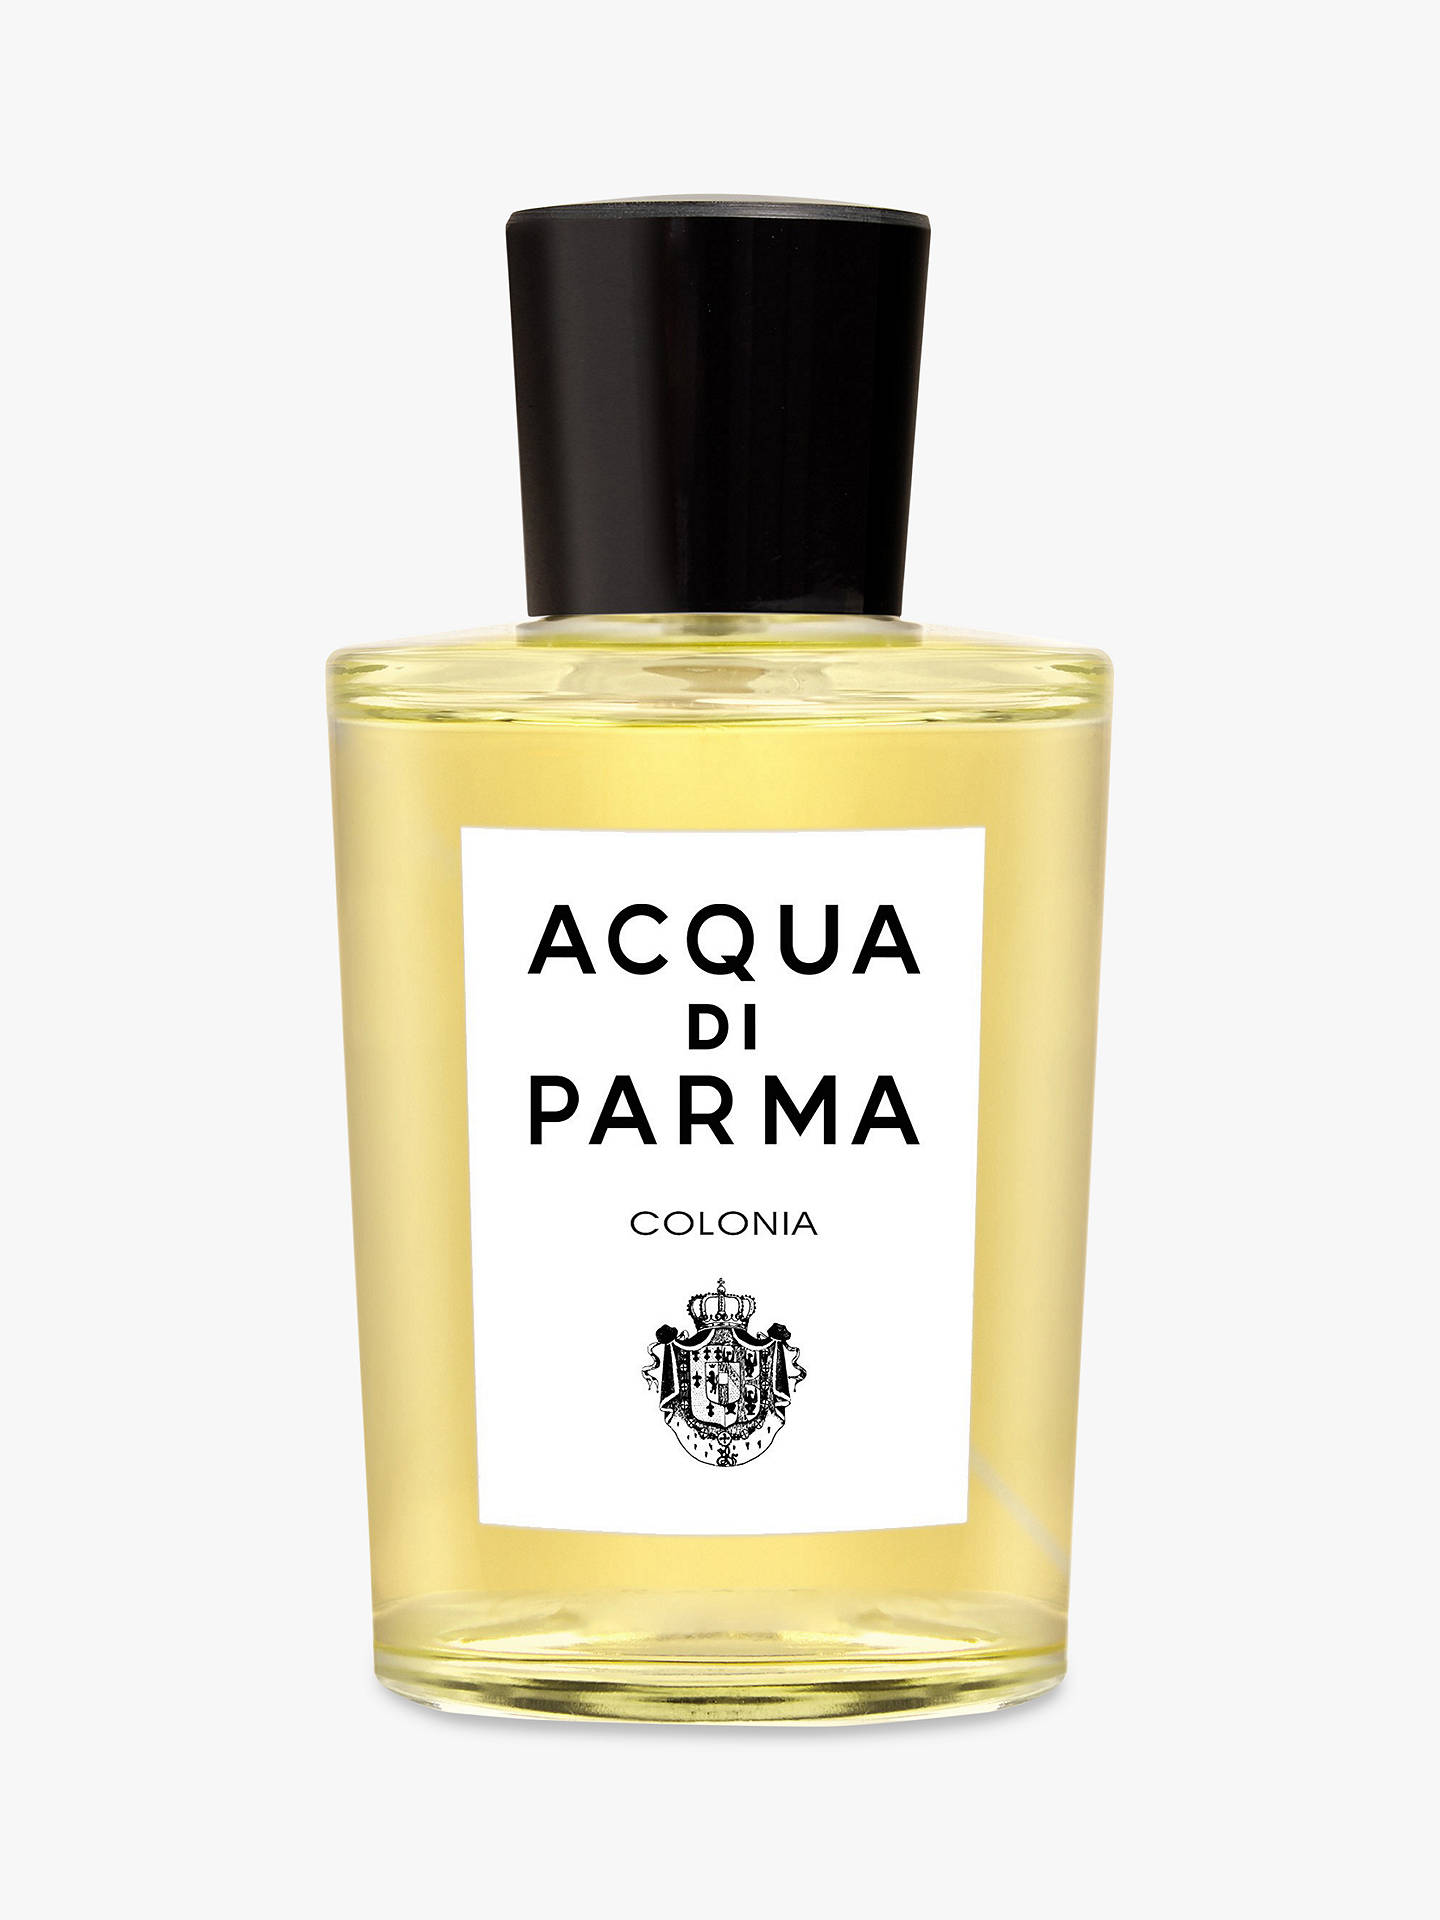 Buy Acqua di Parma Colonia Eau de Cologne Giant Splash Bottle, 500ml Online at johnlewis.com